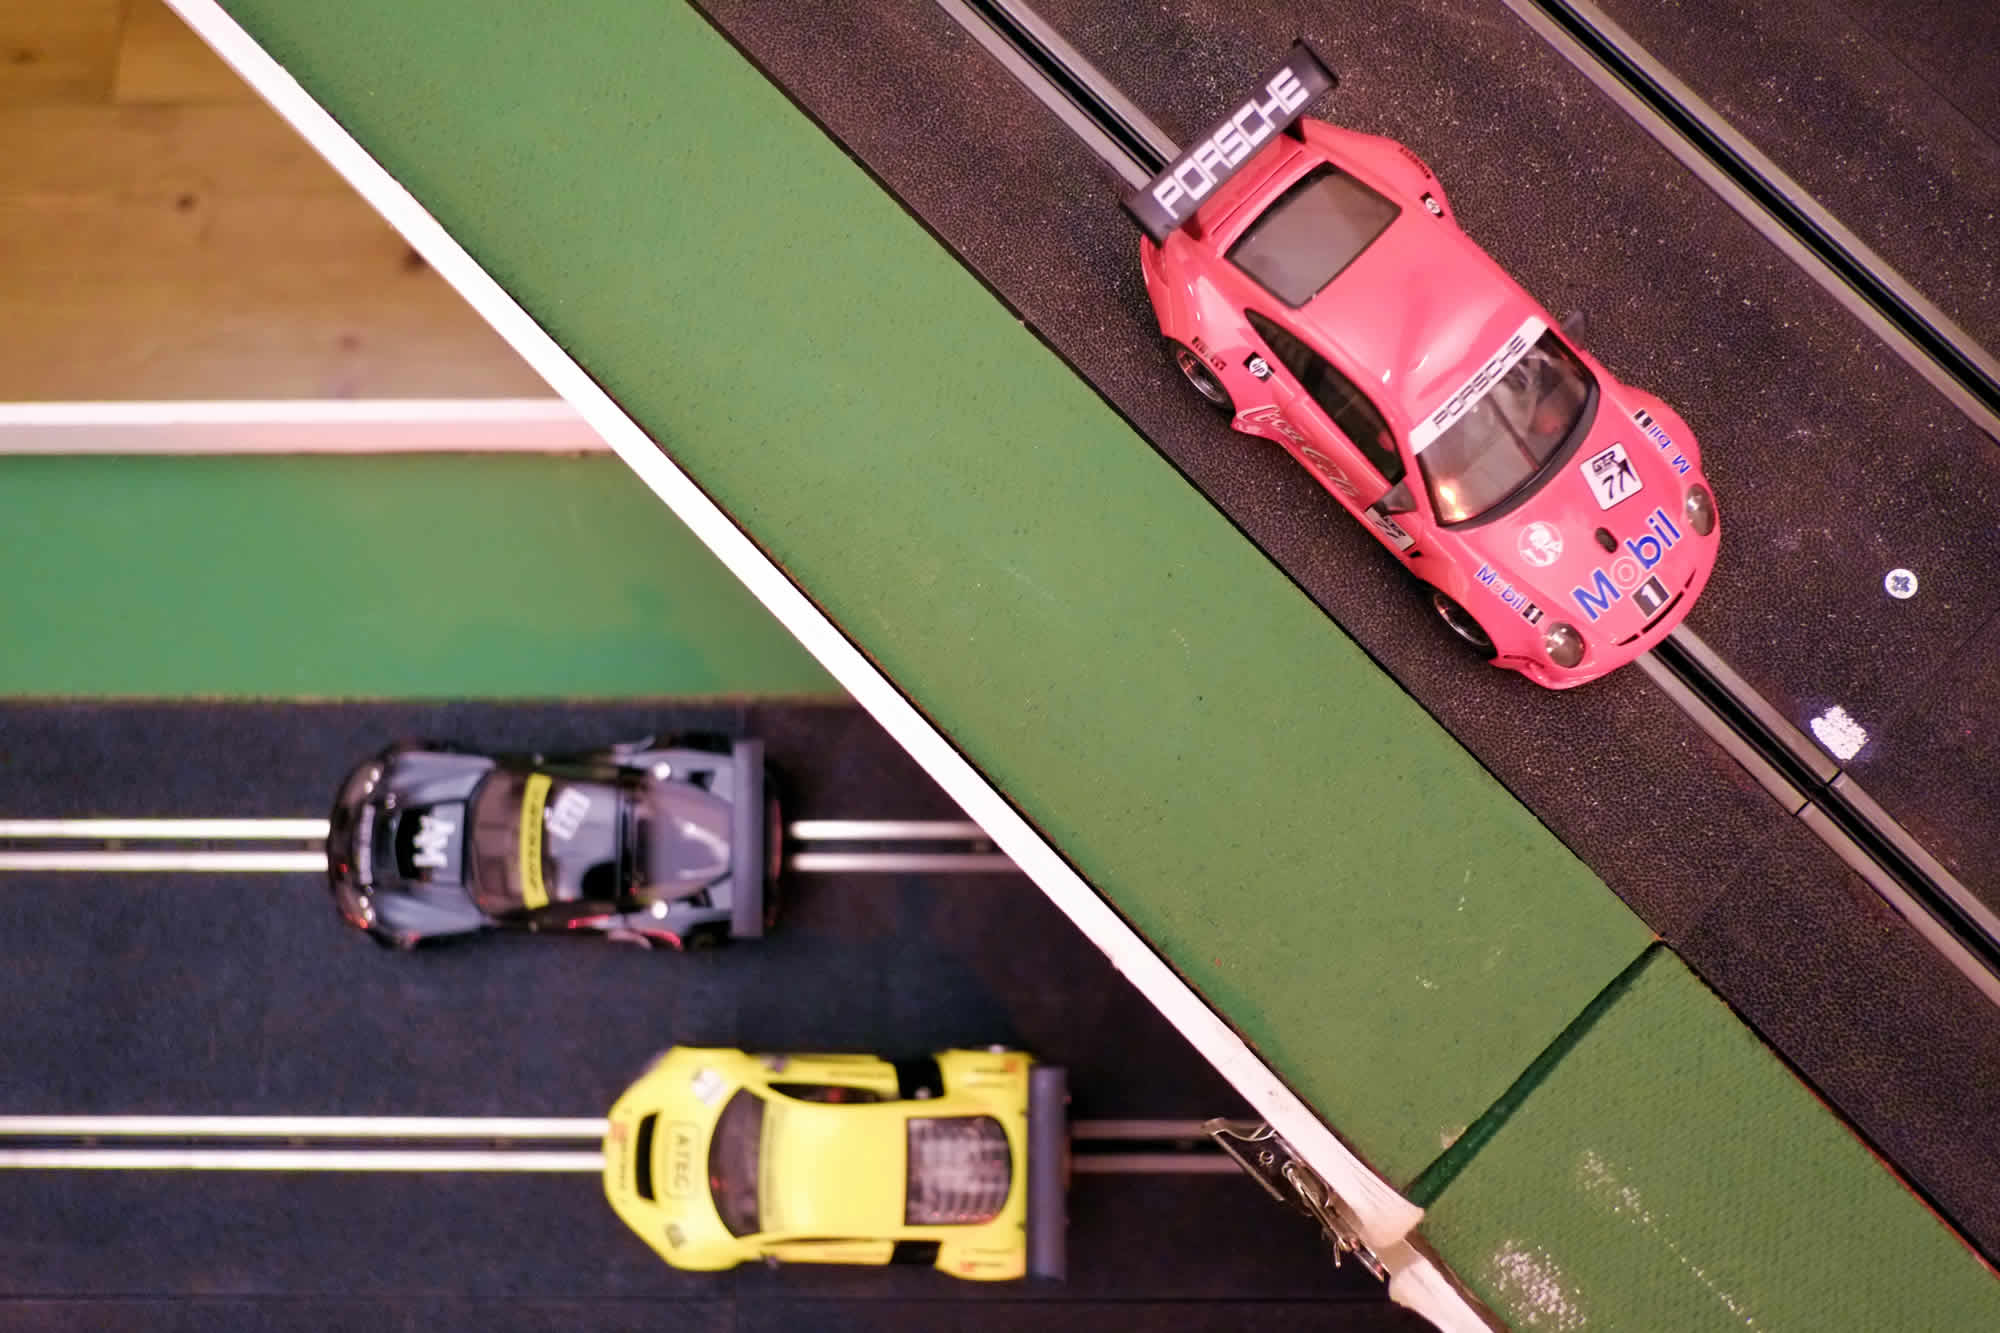 Oxford Scalextric Club